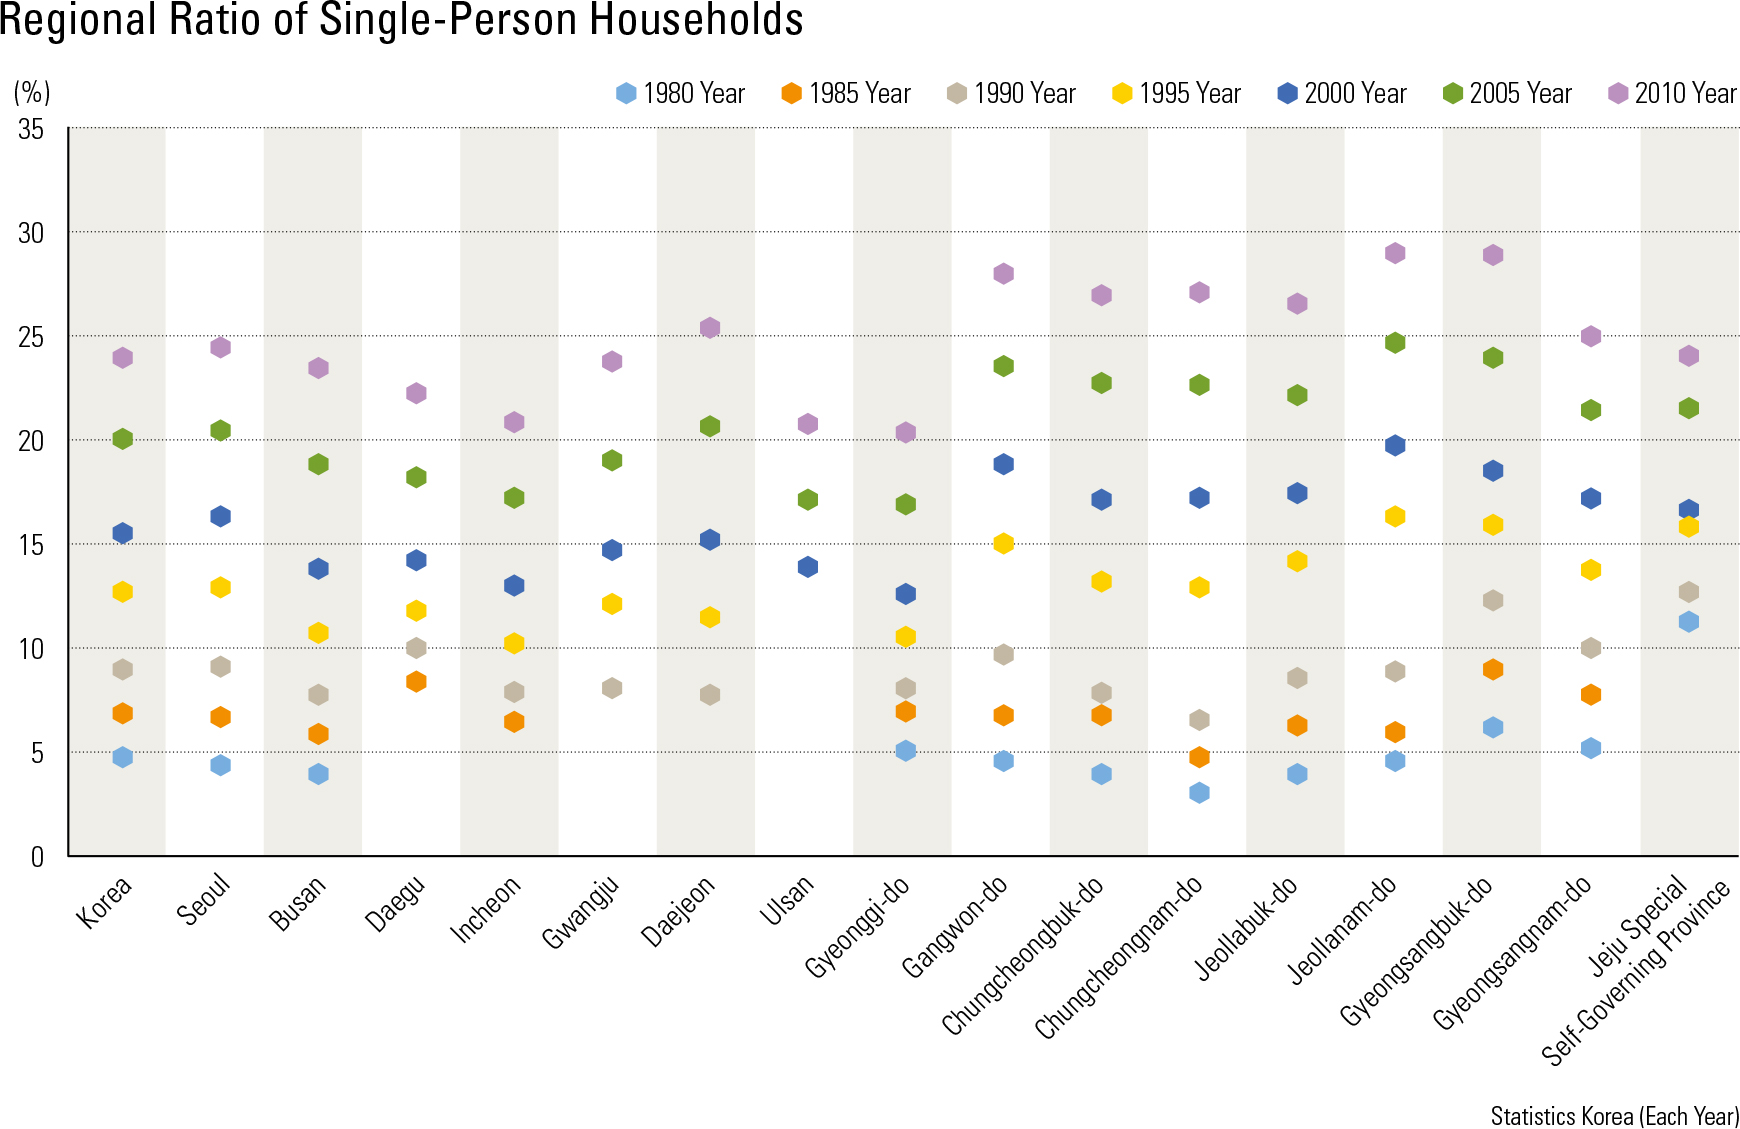 "Regional Ratio of Single-Person Households<p class=""oz_zoom"" zimg=""http://imagedata.cafe24.com/us_3/us3_138-5_2.jpg""><span style=""font-family:Nanum Myeongjo;""><span style=""font-size:18px;""><span class=""label label-danger"">UPDATE DATA</span></span></p>"